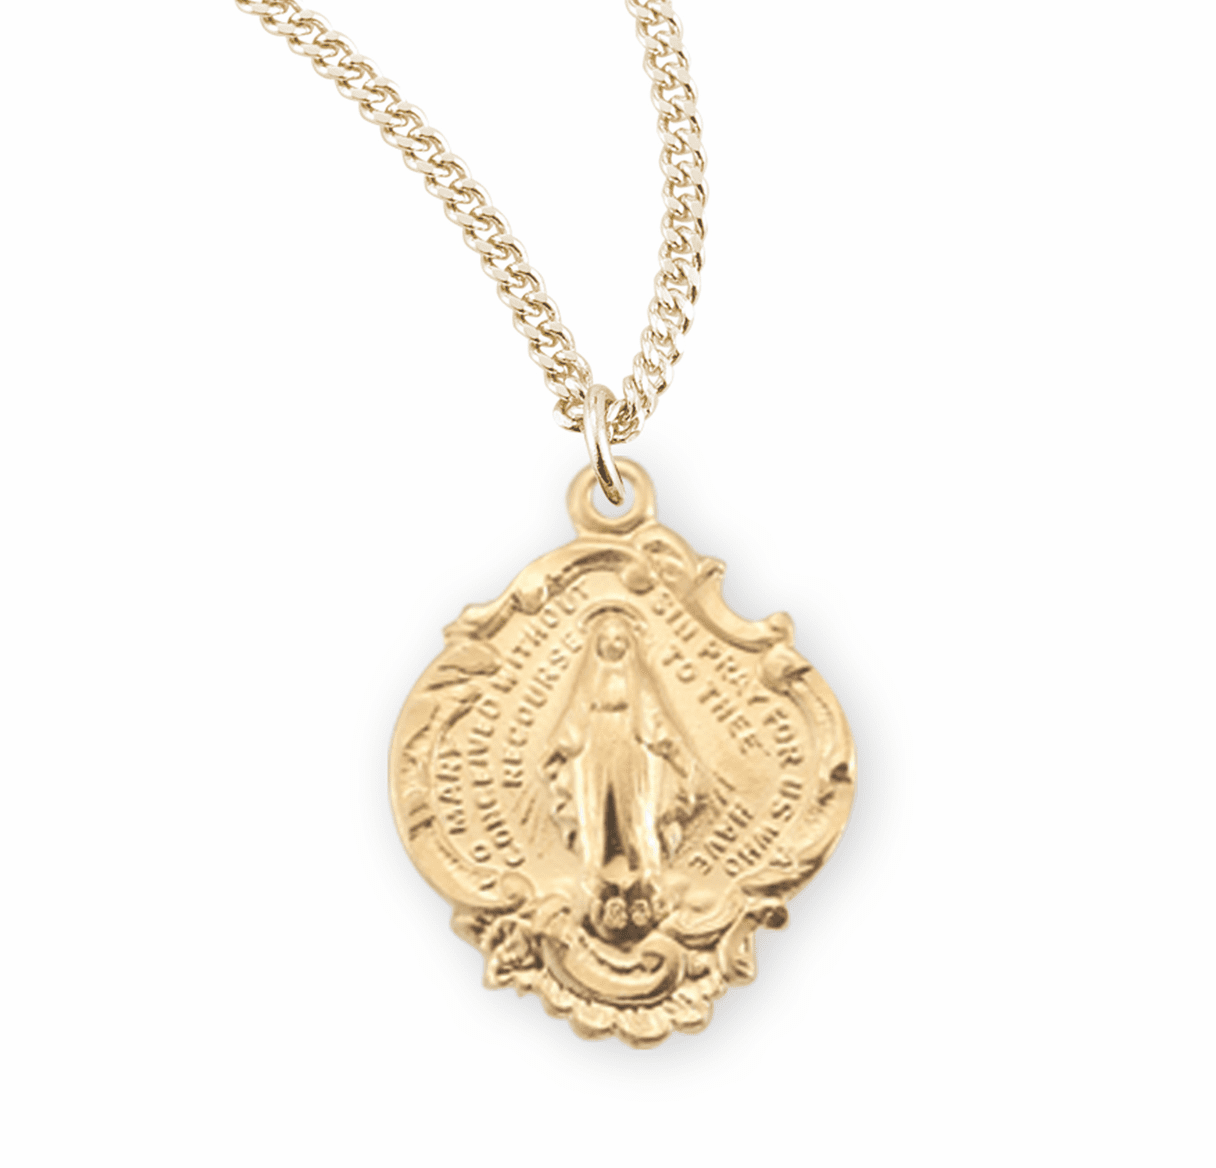 HMH Religious Gold over Sterling Silver Miraculous Medal Necklaces